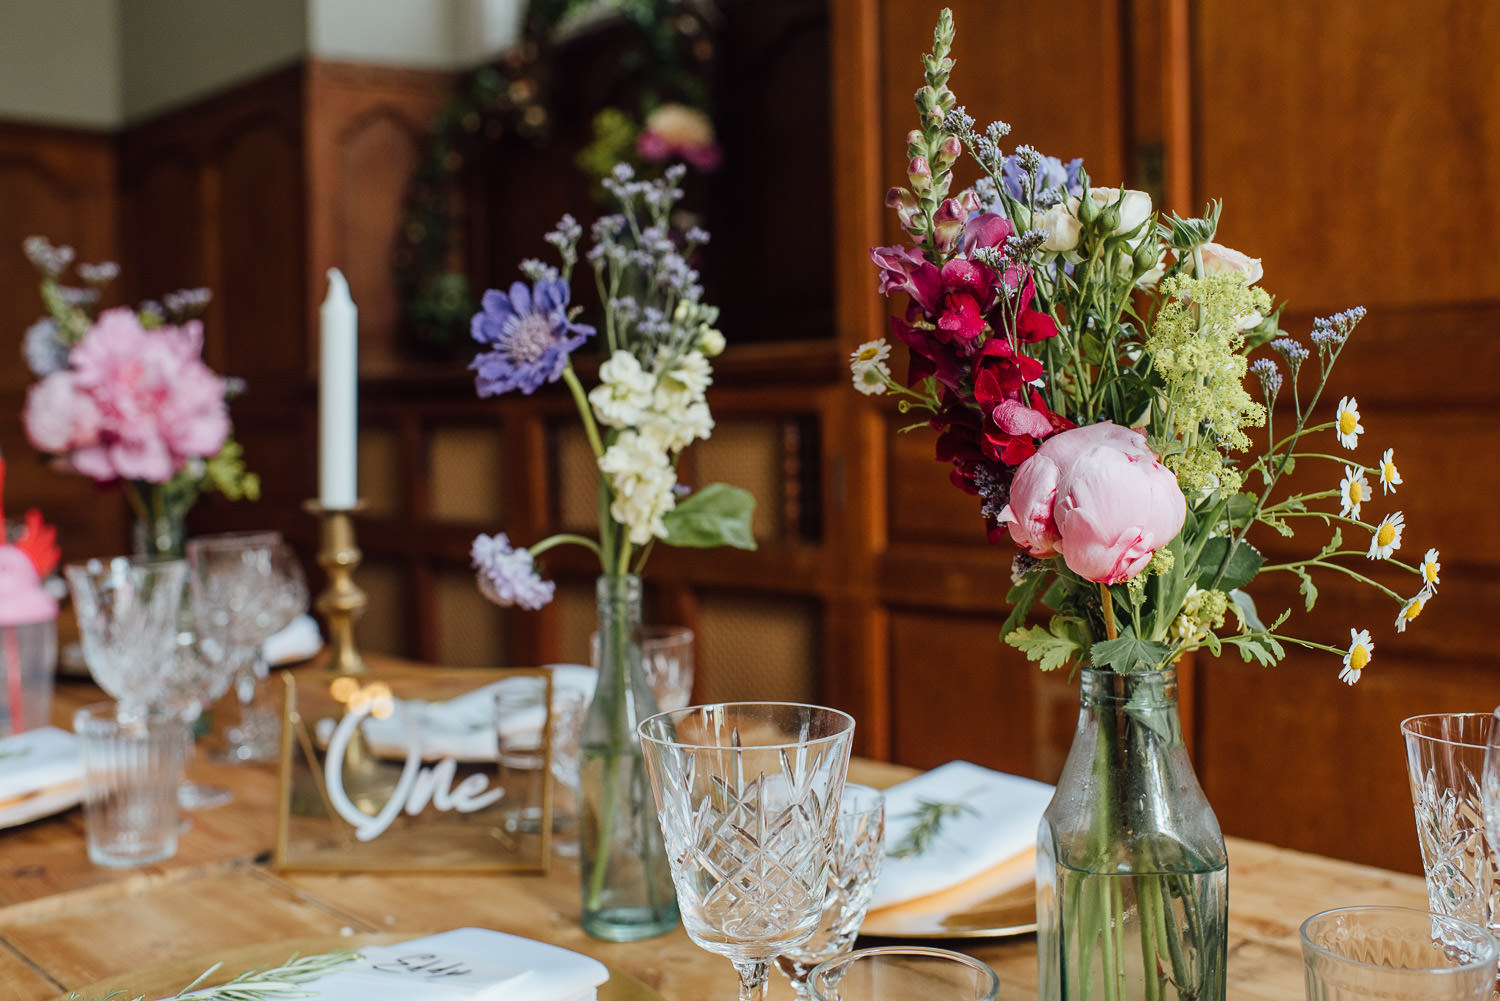 Wild flower table decorations in Barley Wood House Bristol Wedding by bristol wedding photographer the shannons photography